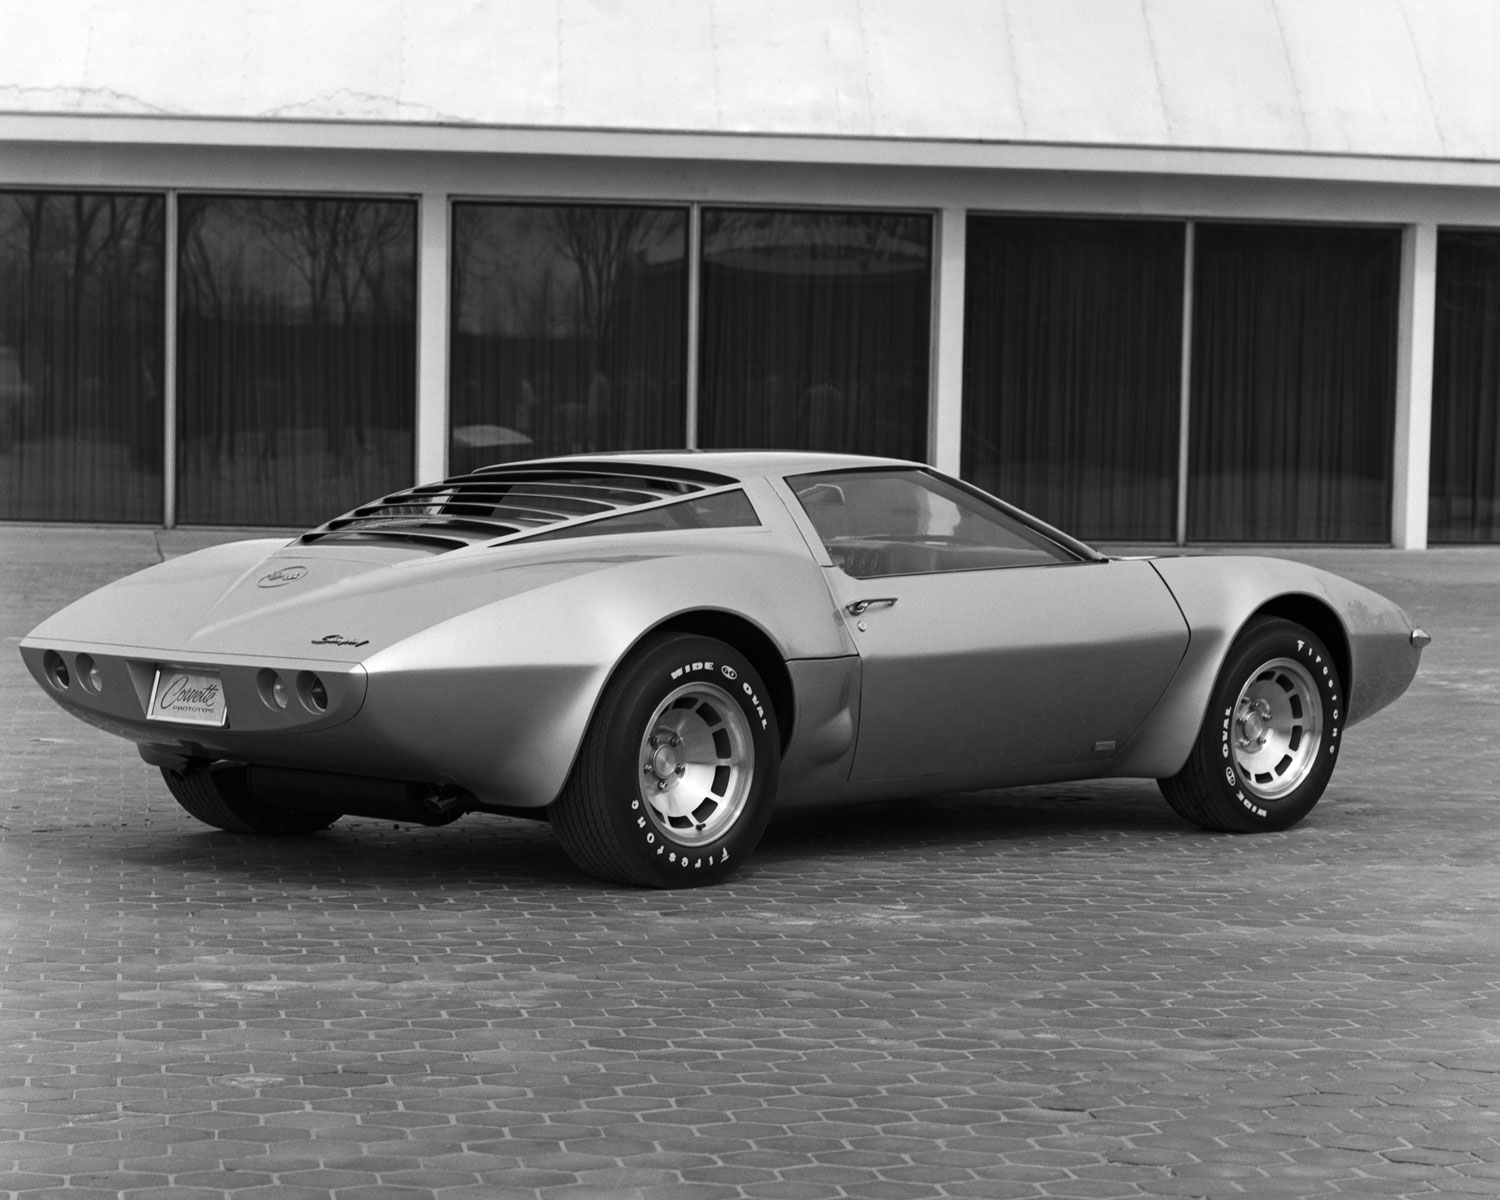 The 1970 XP-882. Here's an interesting footnote about this car - during its development, one variant of the car featured gullwing doors. It has often been speculated that John DeLorean introduced that idea on the XP-882 and carried it with him when he started his own automobile company just a few years later.